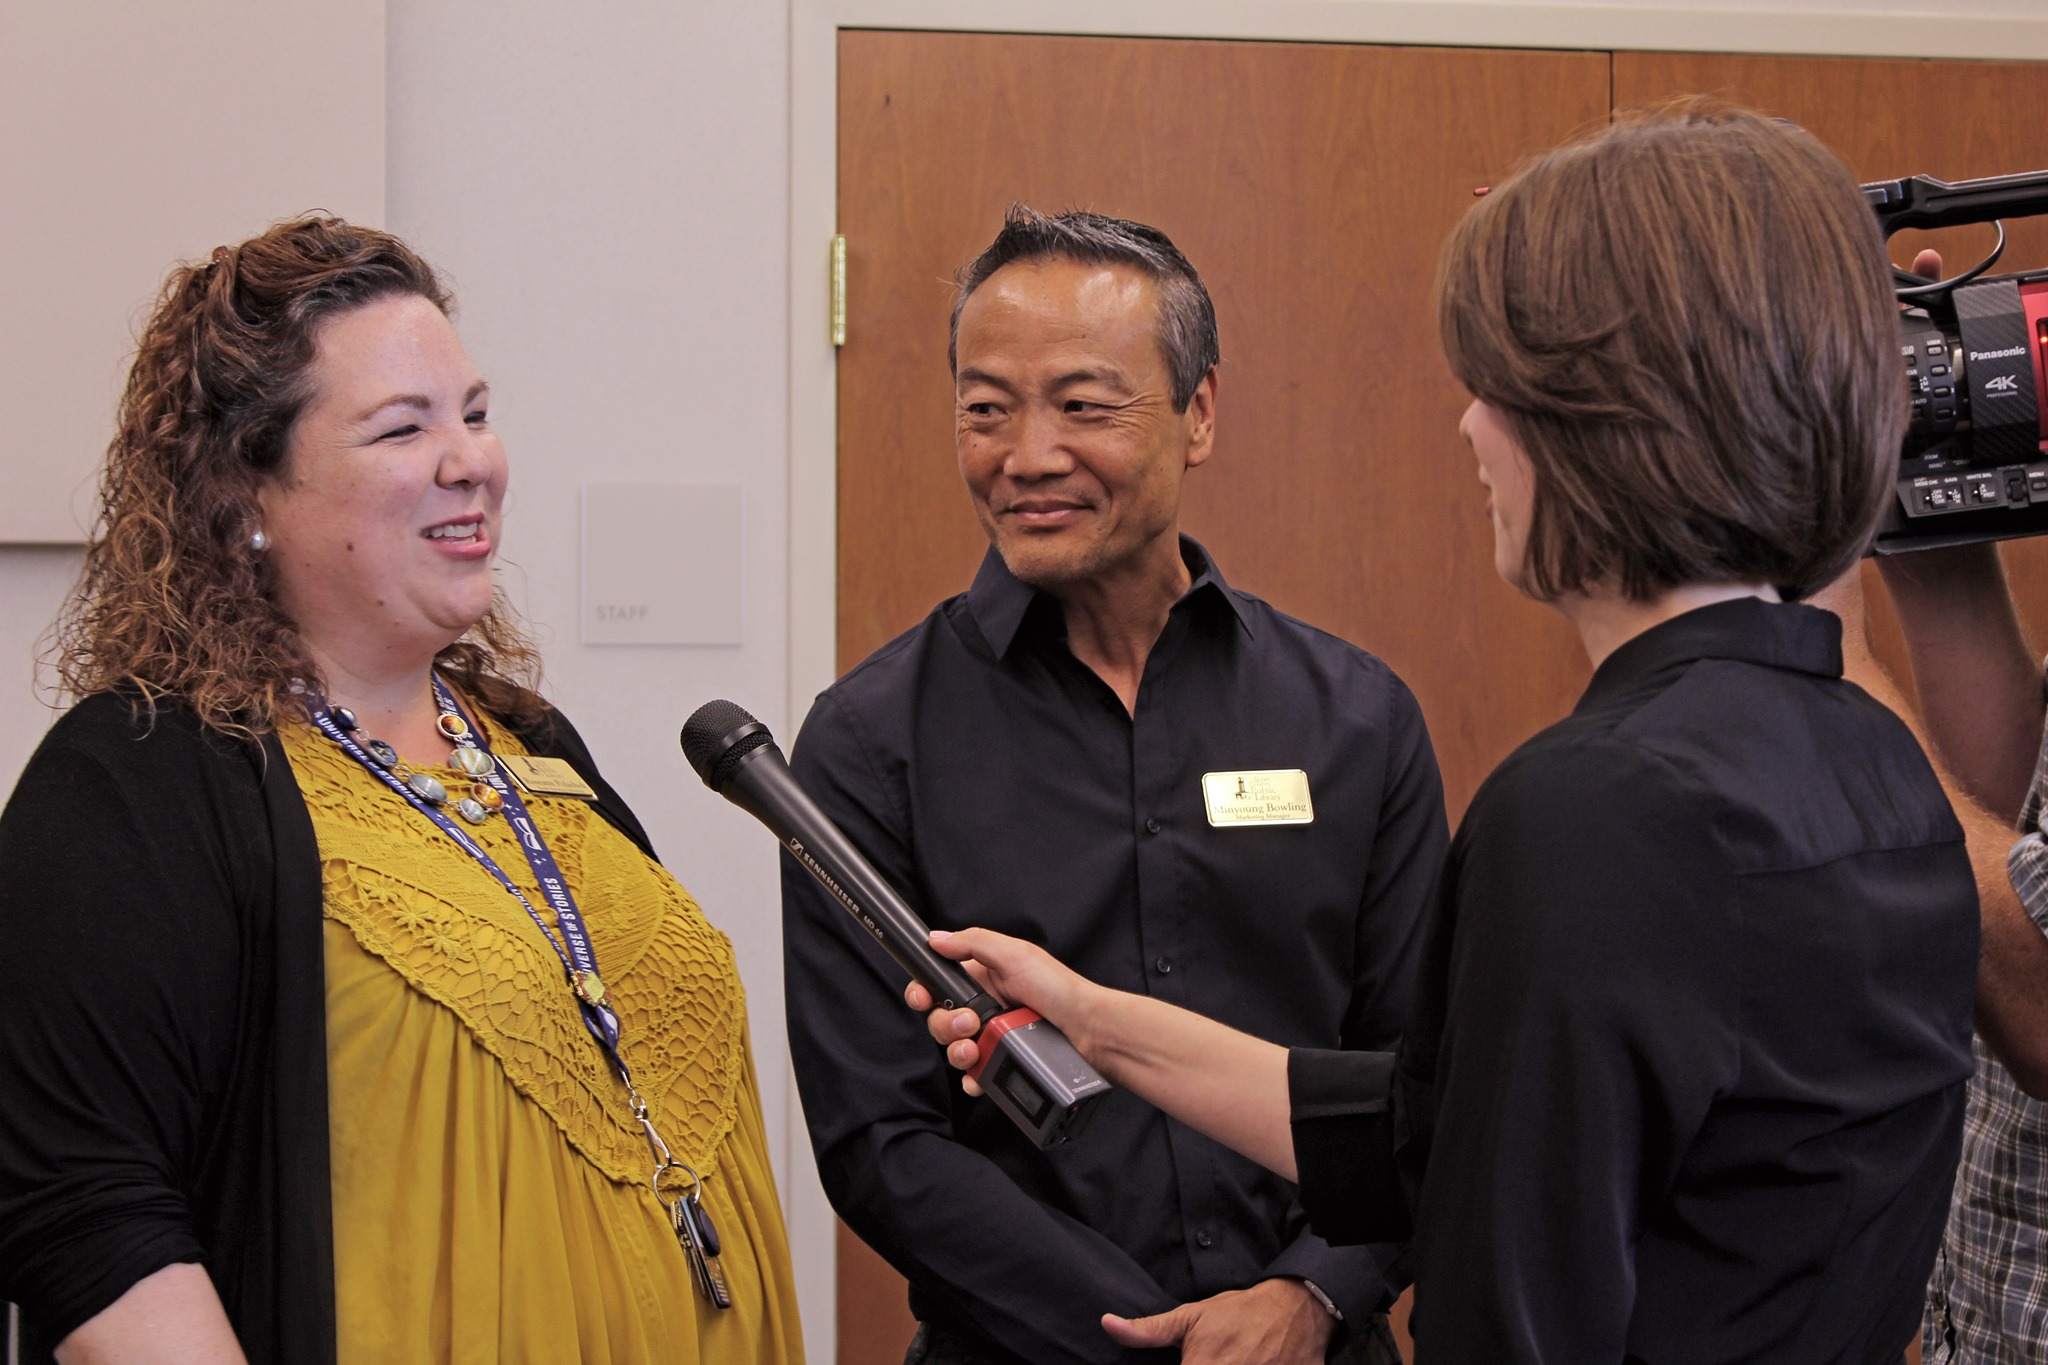 Roseann and Minyoung was interviewed during the Summer Reading Global launch